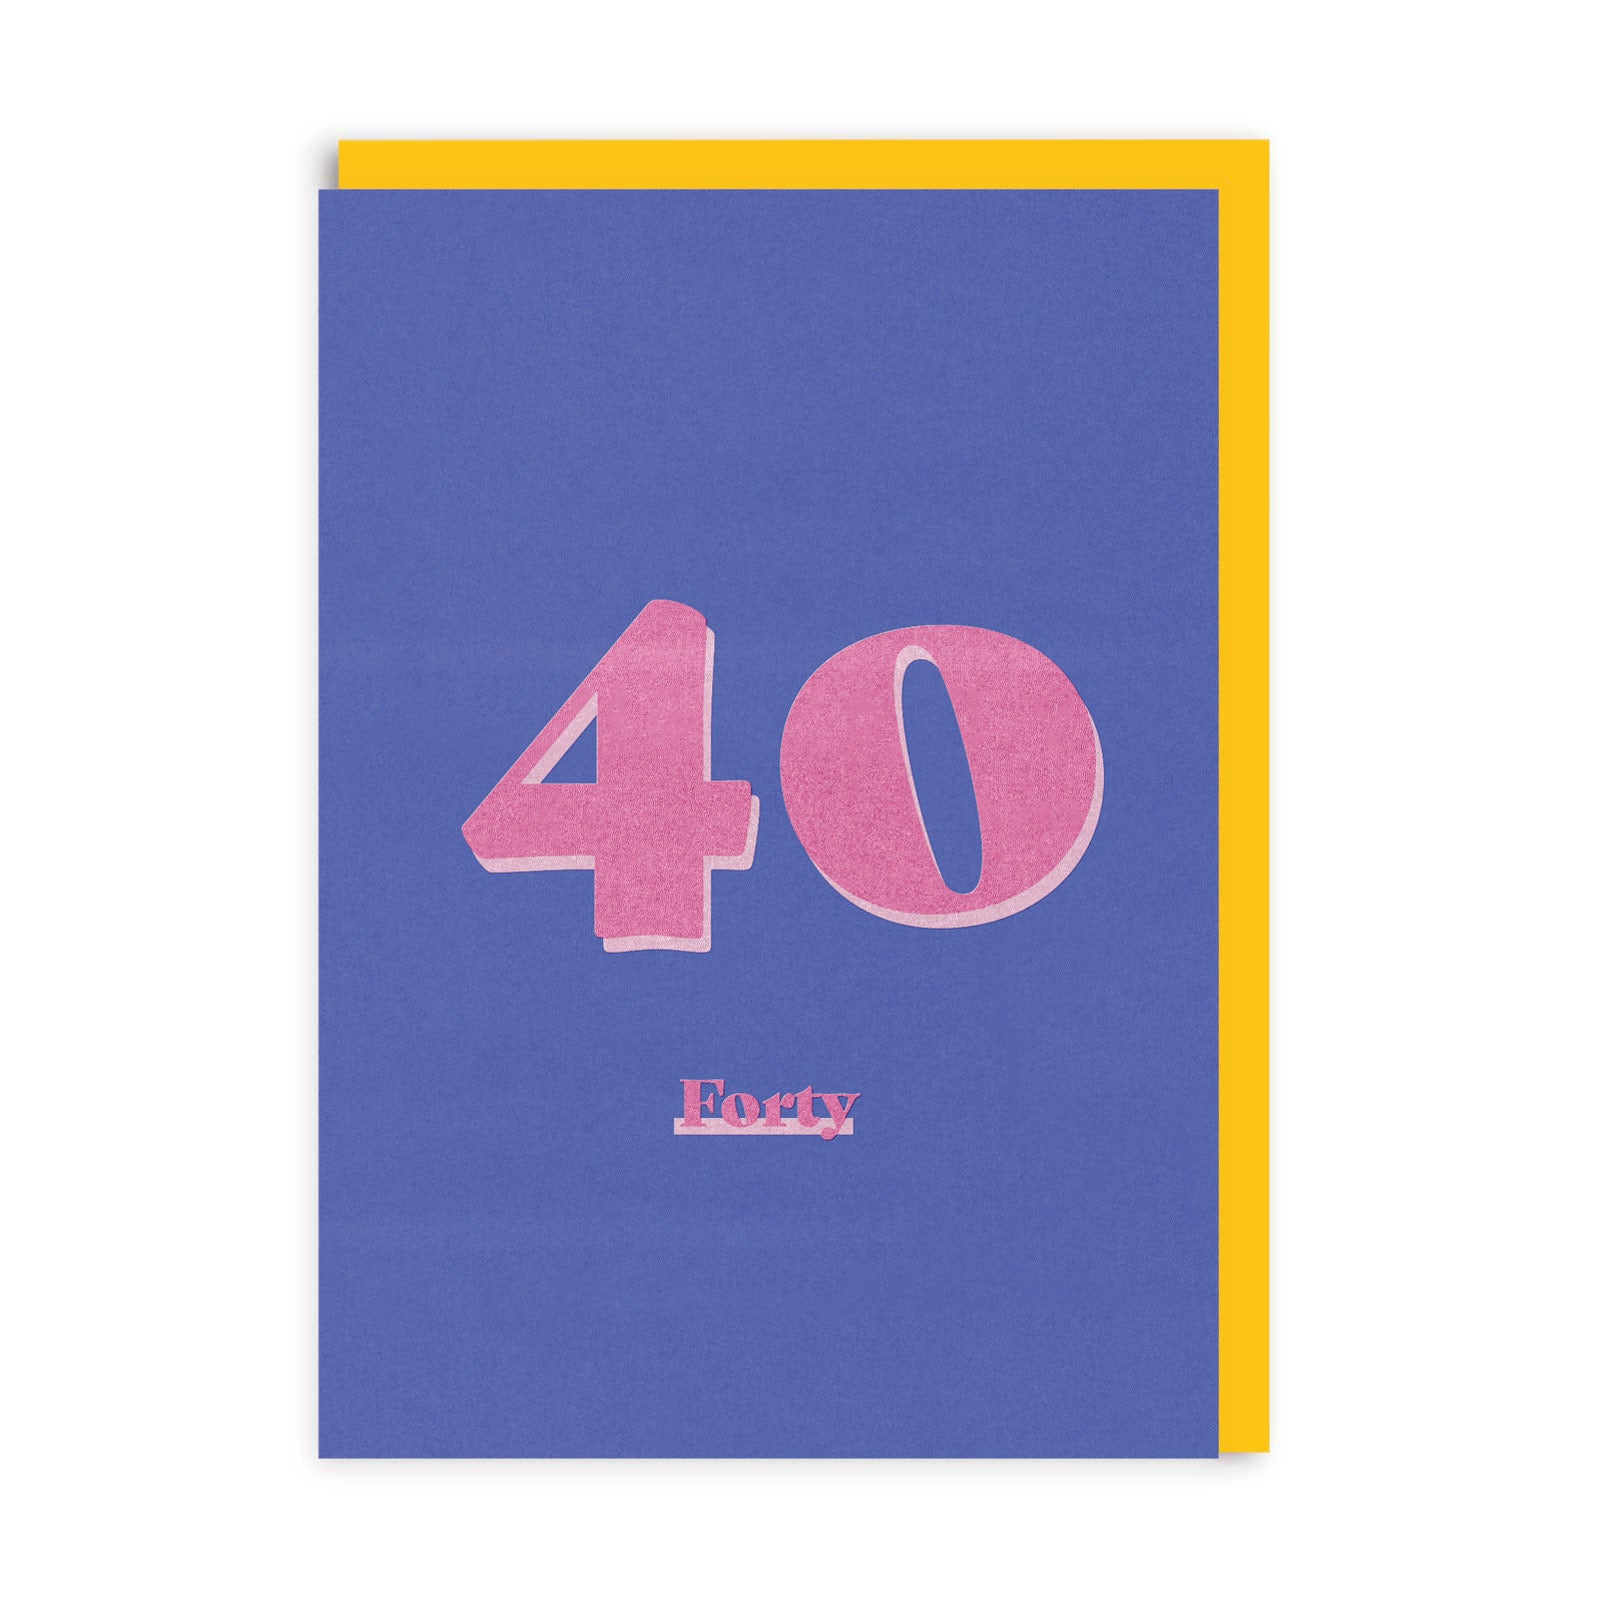 Purple greetings card with pink 40 and forty text, with yellow envelope behind